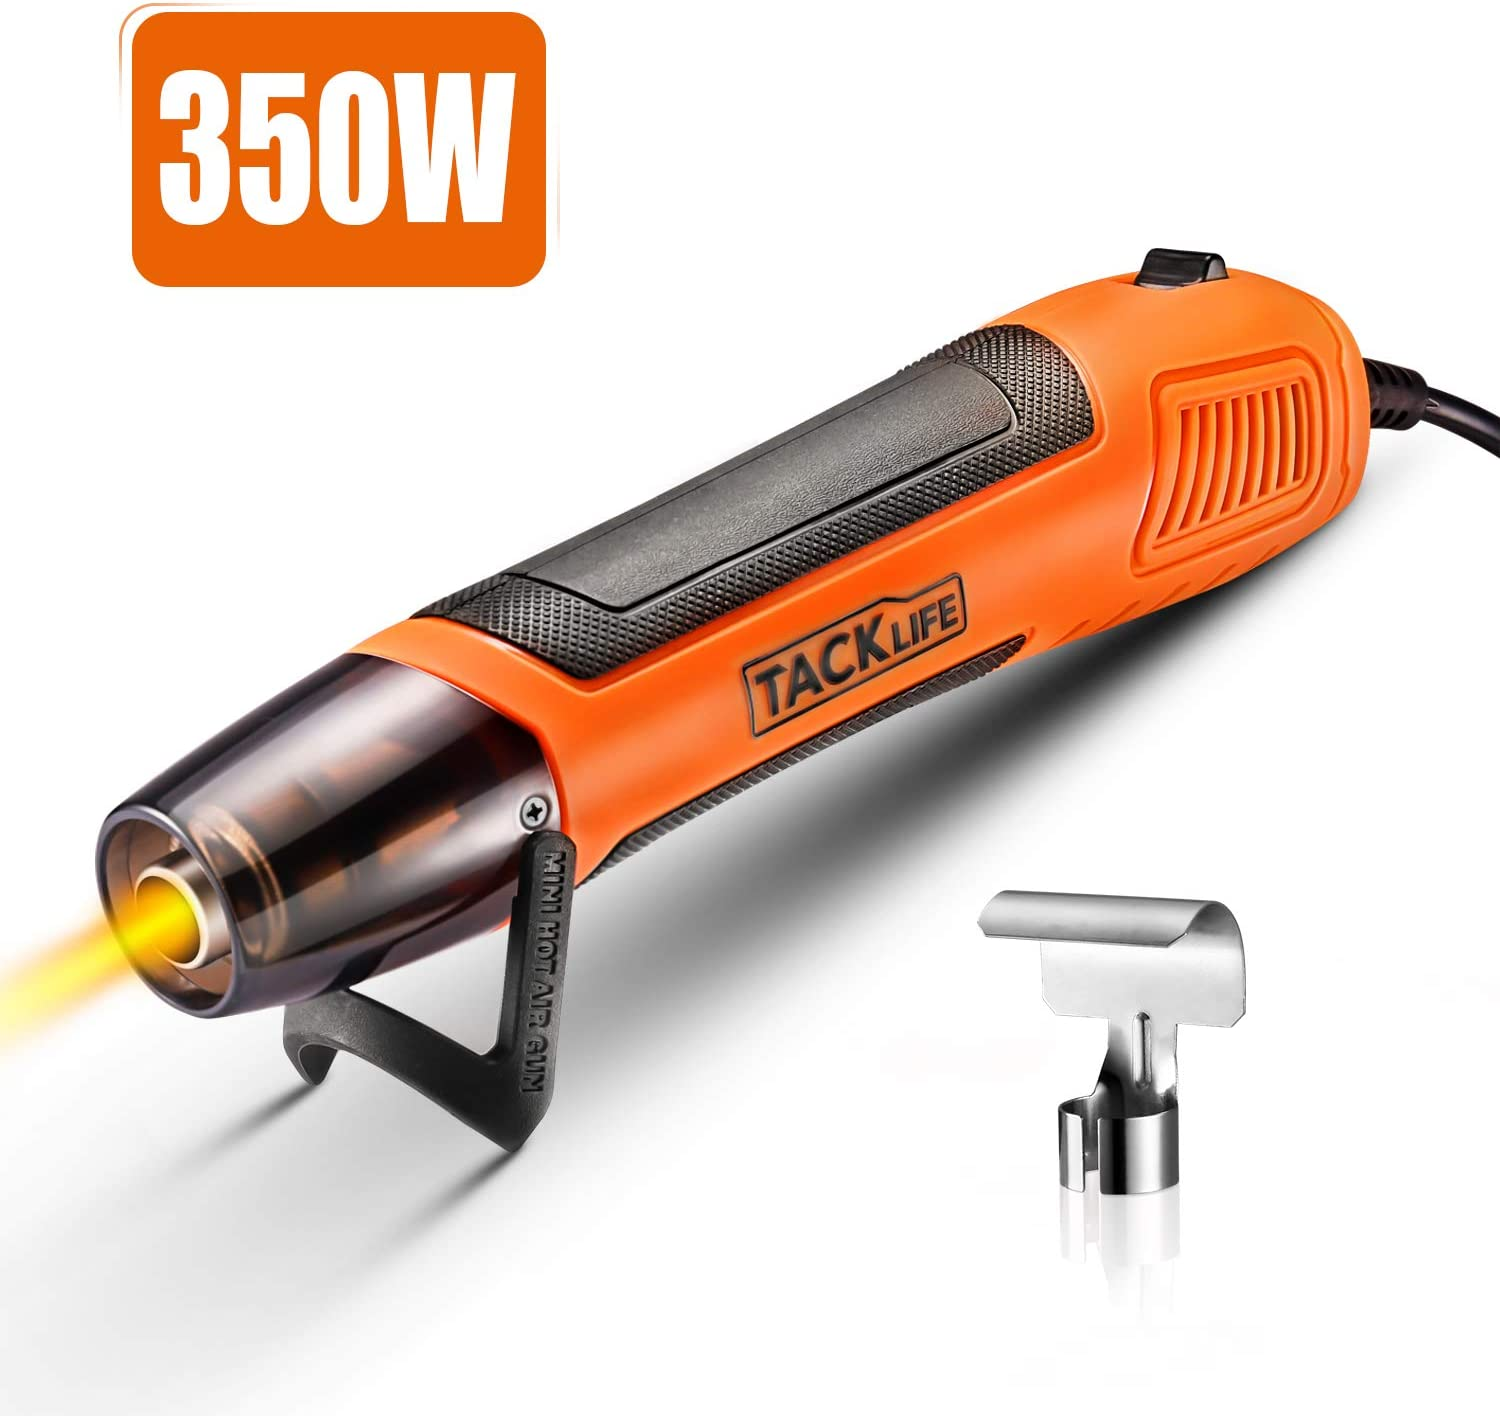 Mini Heat Gun, TACKLIFE 350W 662°F Handheld Hot Air Gun, 6.56Ft Ultra Long Cable for DIY Craft Embossing, Shrink Wrapping and Drying Paint- HGP35AC